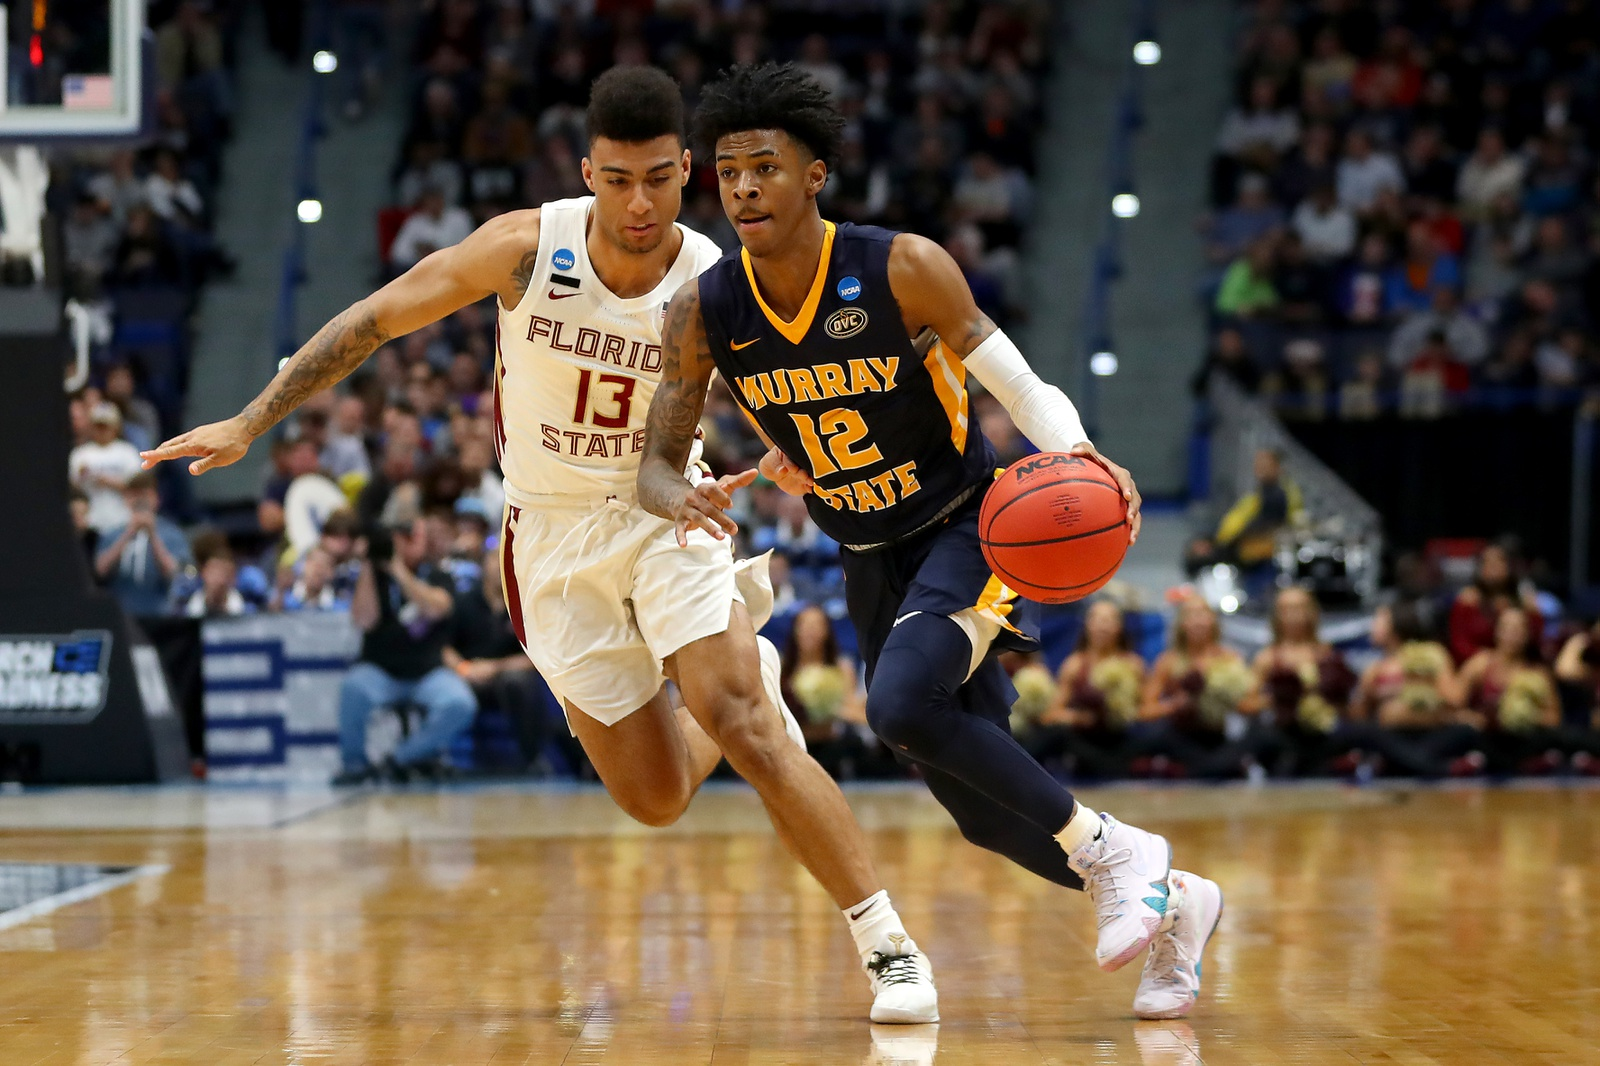 Ja Morant #12 of the Murray State Racers is defended by Anthony Polite #13 of the Florida State Seminoles in the second half during the second round of the 2019 NCAA Men's Basketball Tournament at XL Center on March 23, 2019 in Hartford, Connecticut